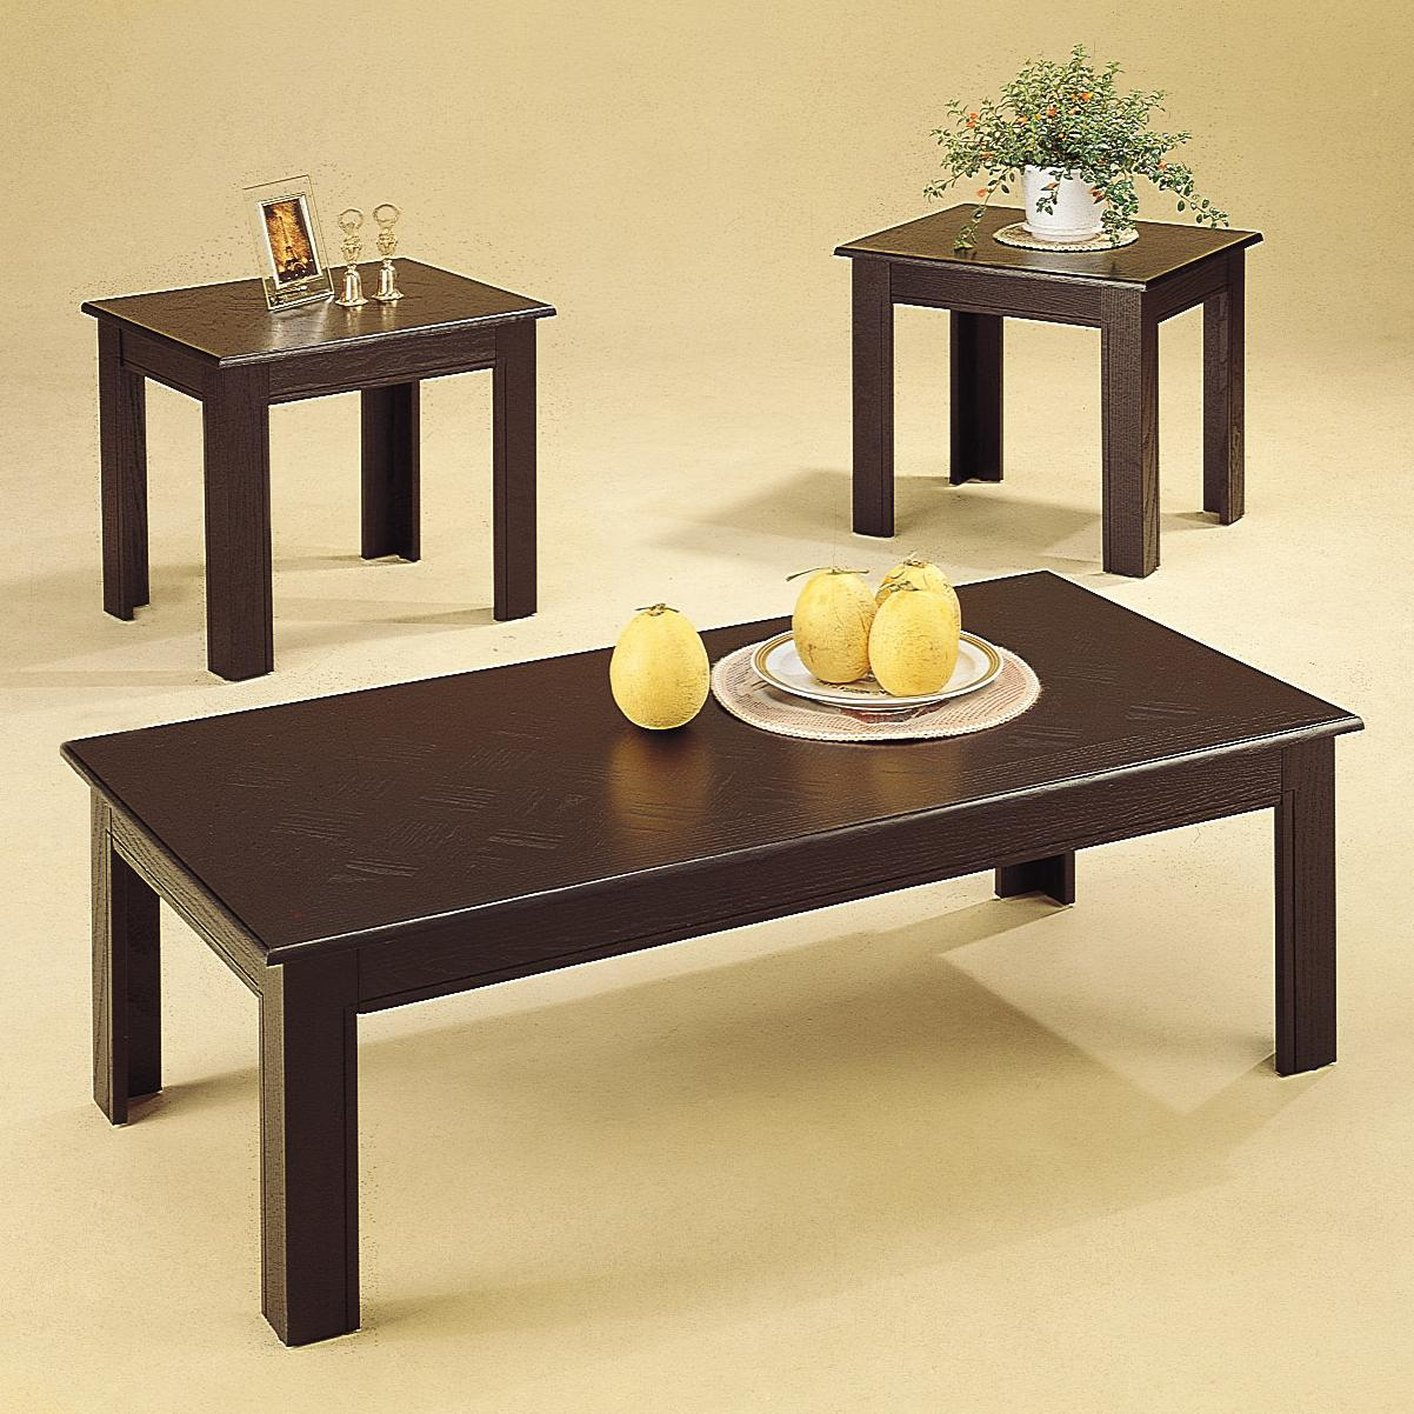 Acosta Black Wood Coffee Table Set Part 37